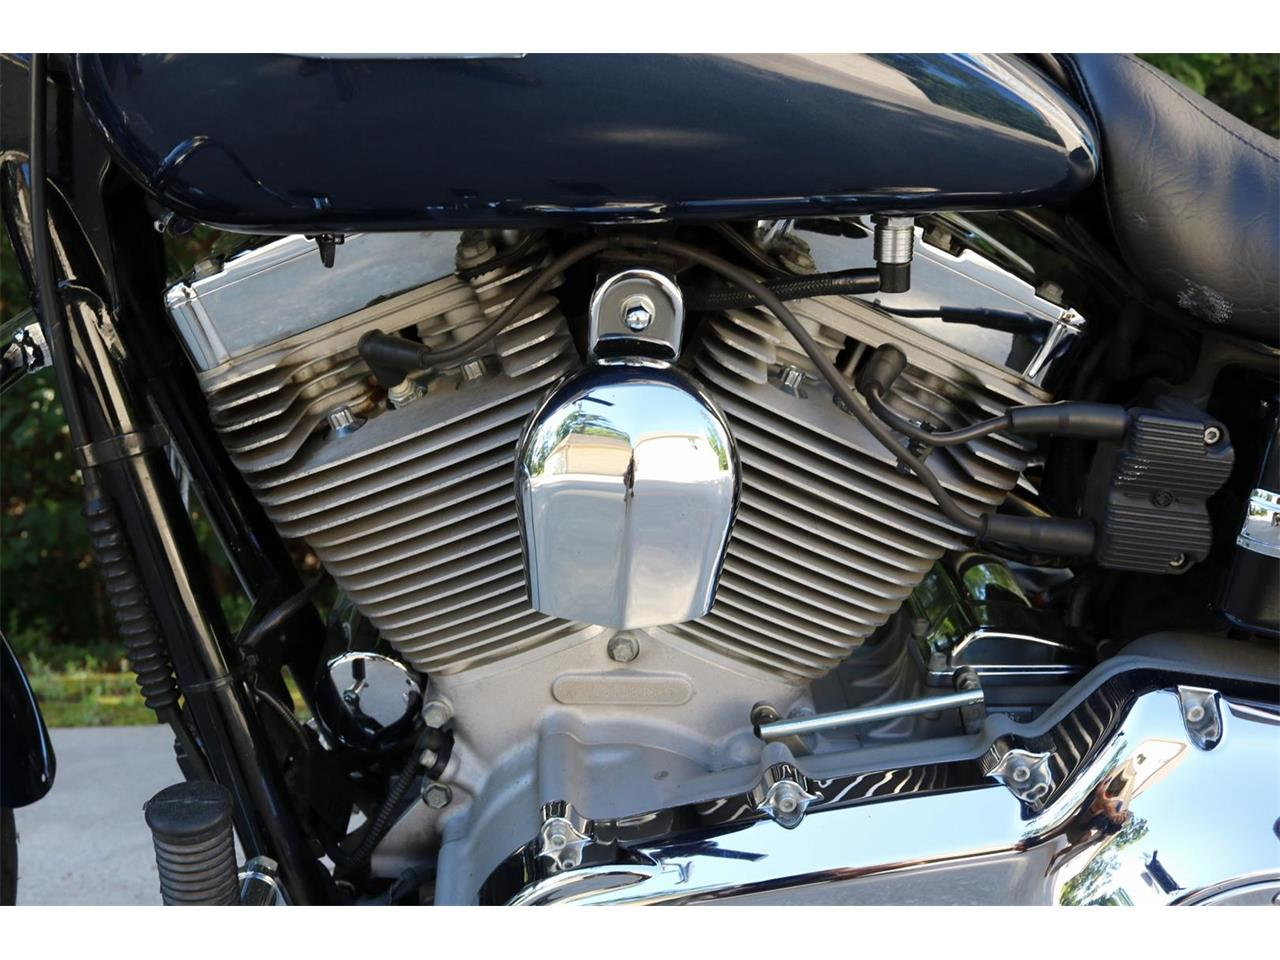 Large Picture of '08 Motorcycle - QEDT